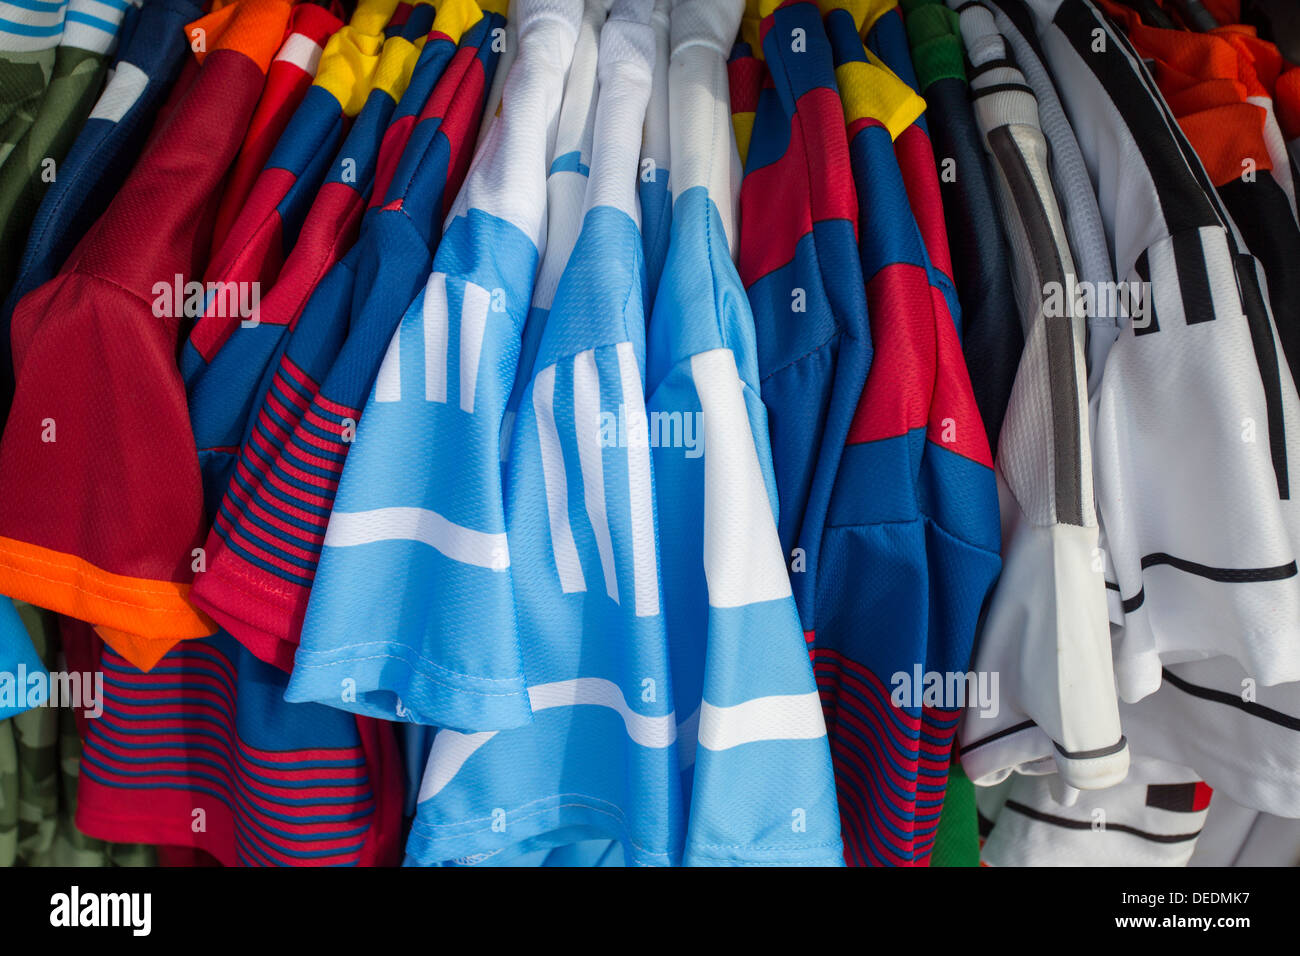 WORLD FOOTBALL SHIRTS FOR SALE NEAR SAN MARCO. VENICE, ITALY - Stock Image